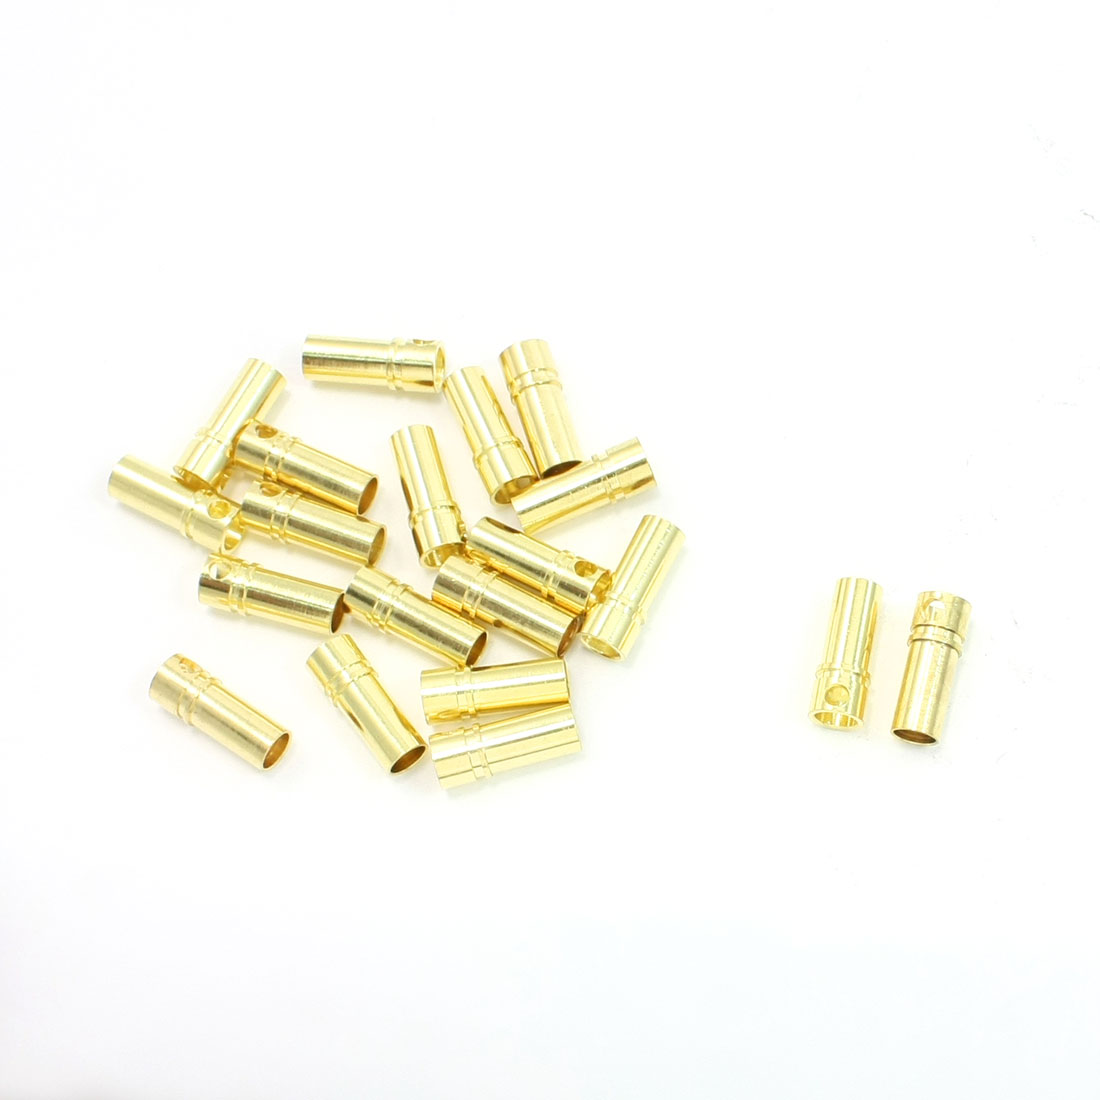 20 Pcs Gold Tone Metal RC Cone Female Connector 3.5mm - image 1 of 1